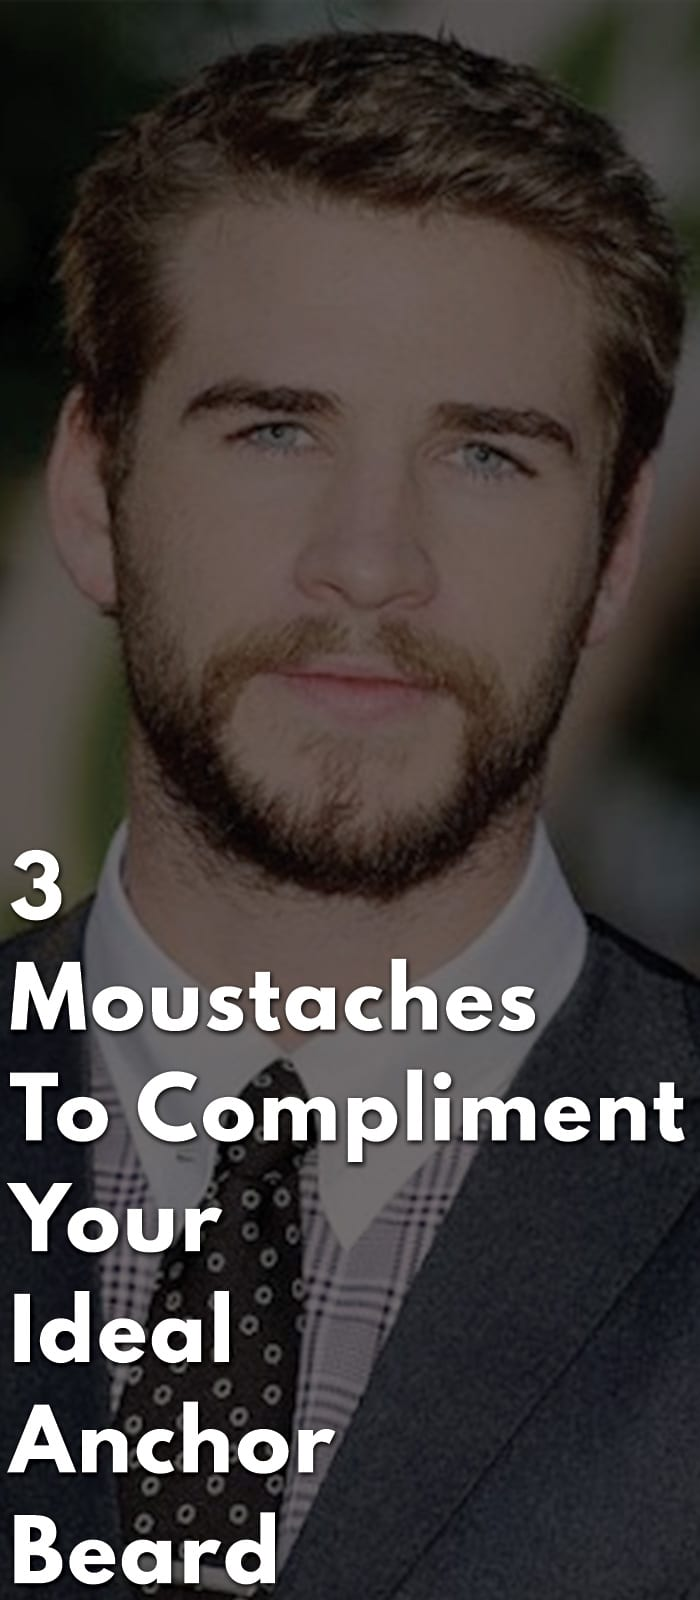 3-Moustaches-To-Compliment-Your-Ideal-Anchor-Beard